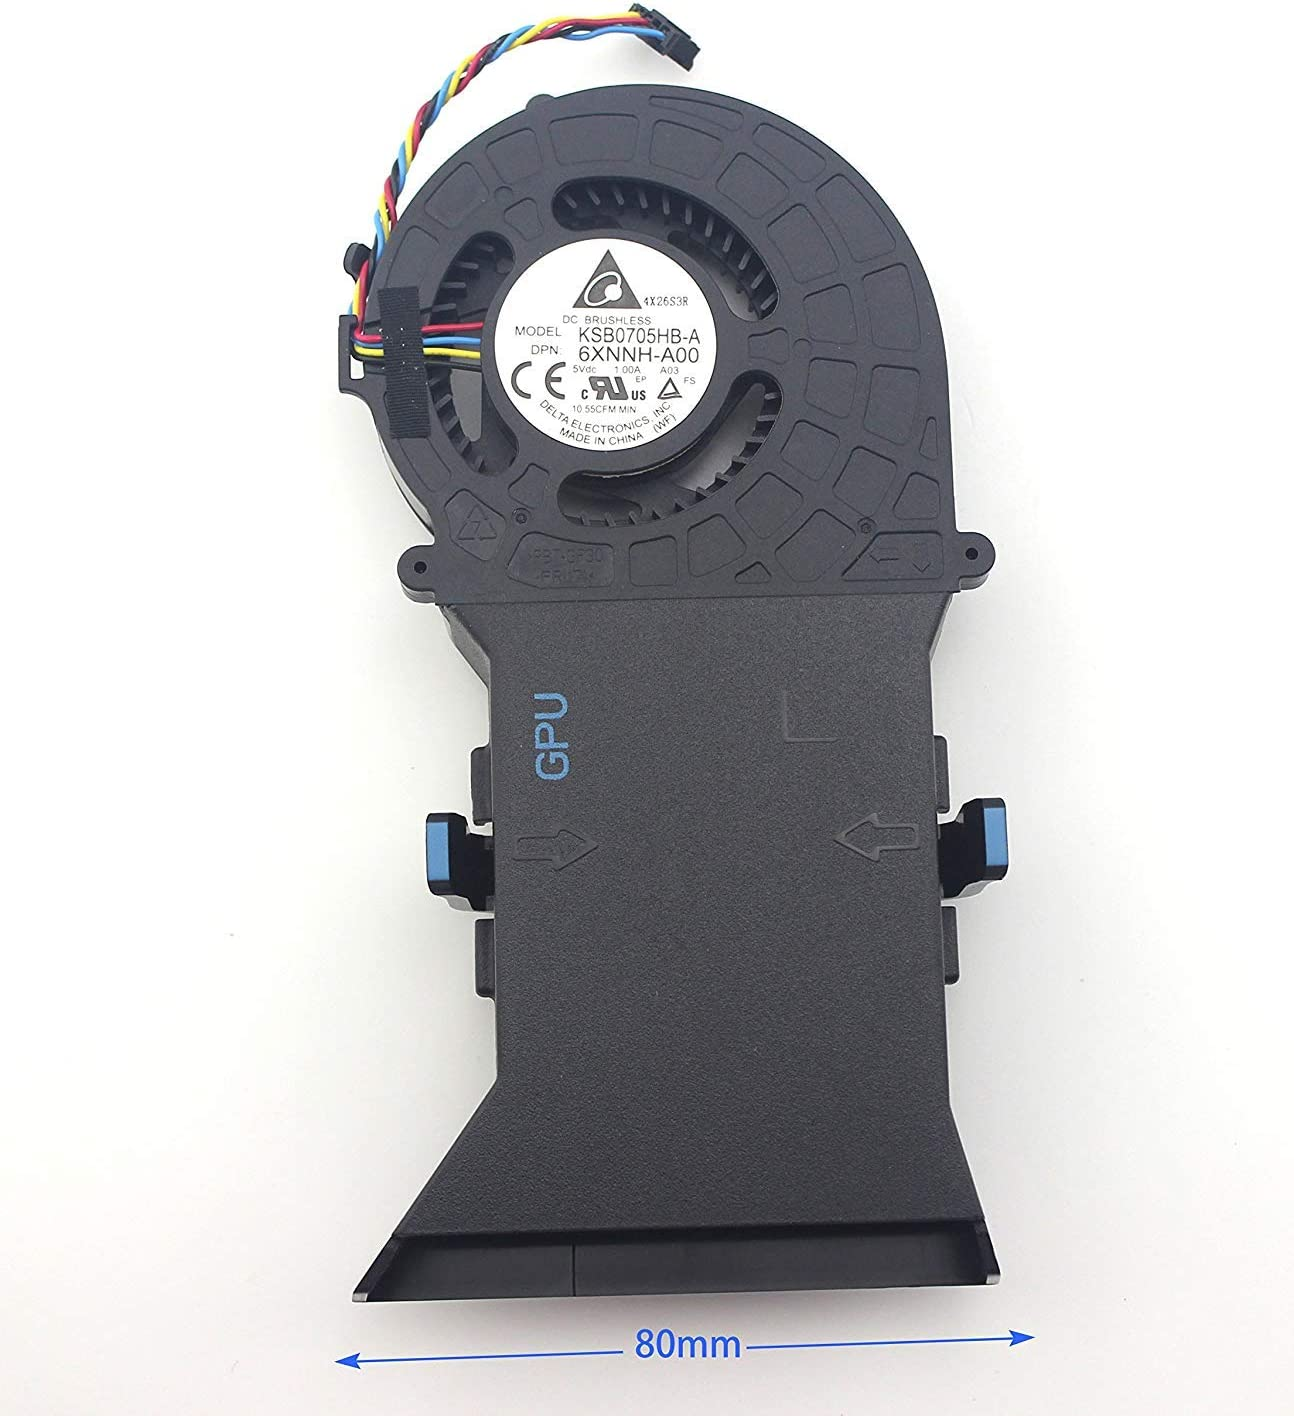 Original Genuine New for Dell Alienware Alpha R2 06XNNH KSB0705HB-A-6XNNH-A00 GPU Cooling Fan